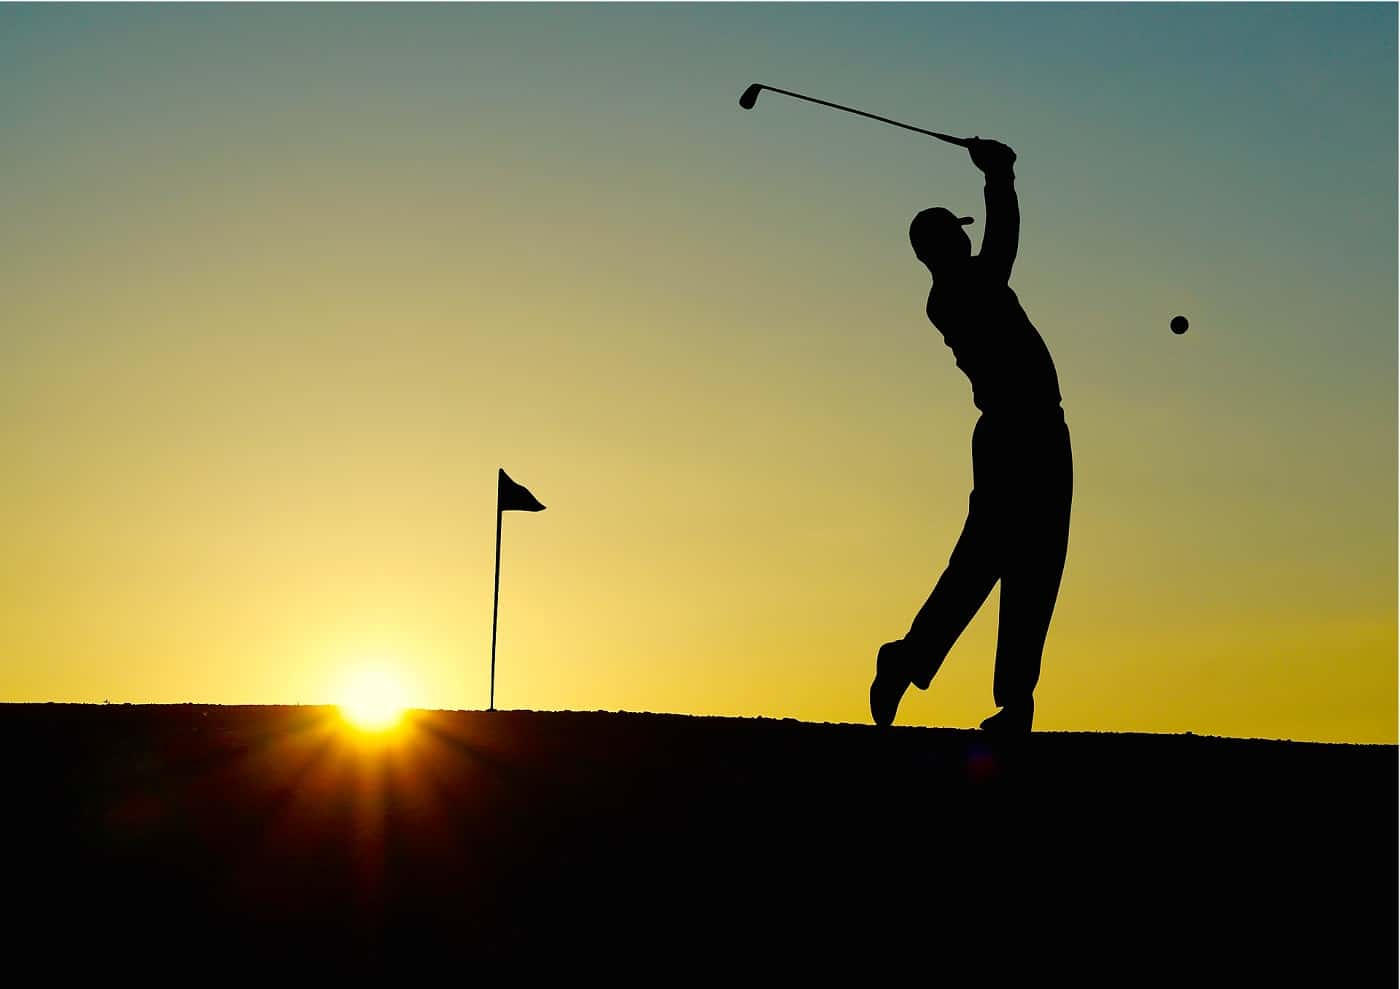 Silhouette of man golfing - Your fittest future self